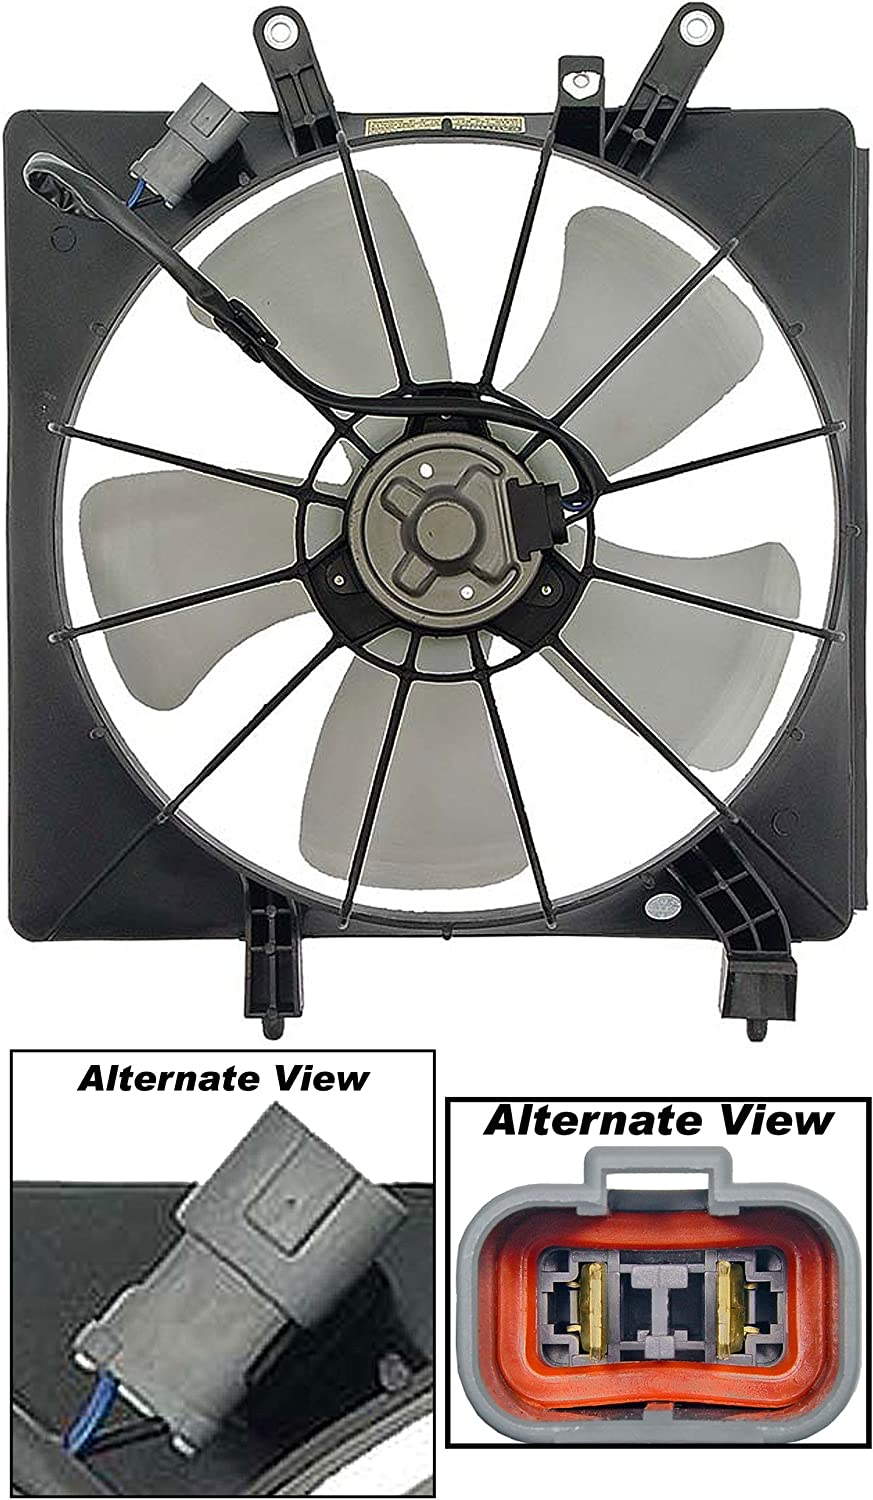 APDTY 731320 Radiator Cooling Fan Blade Motor Shroud Assembly Fits 2001-2005 Honda Civic (Replaces 19000-PLF-513, 19015PLC003, 19015-PMM-A51, 19020-PLC-003, 19030-PAA-A01)